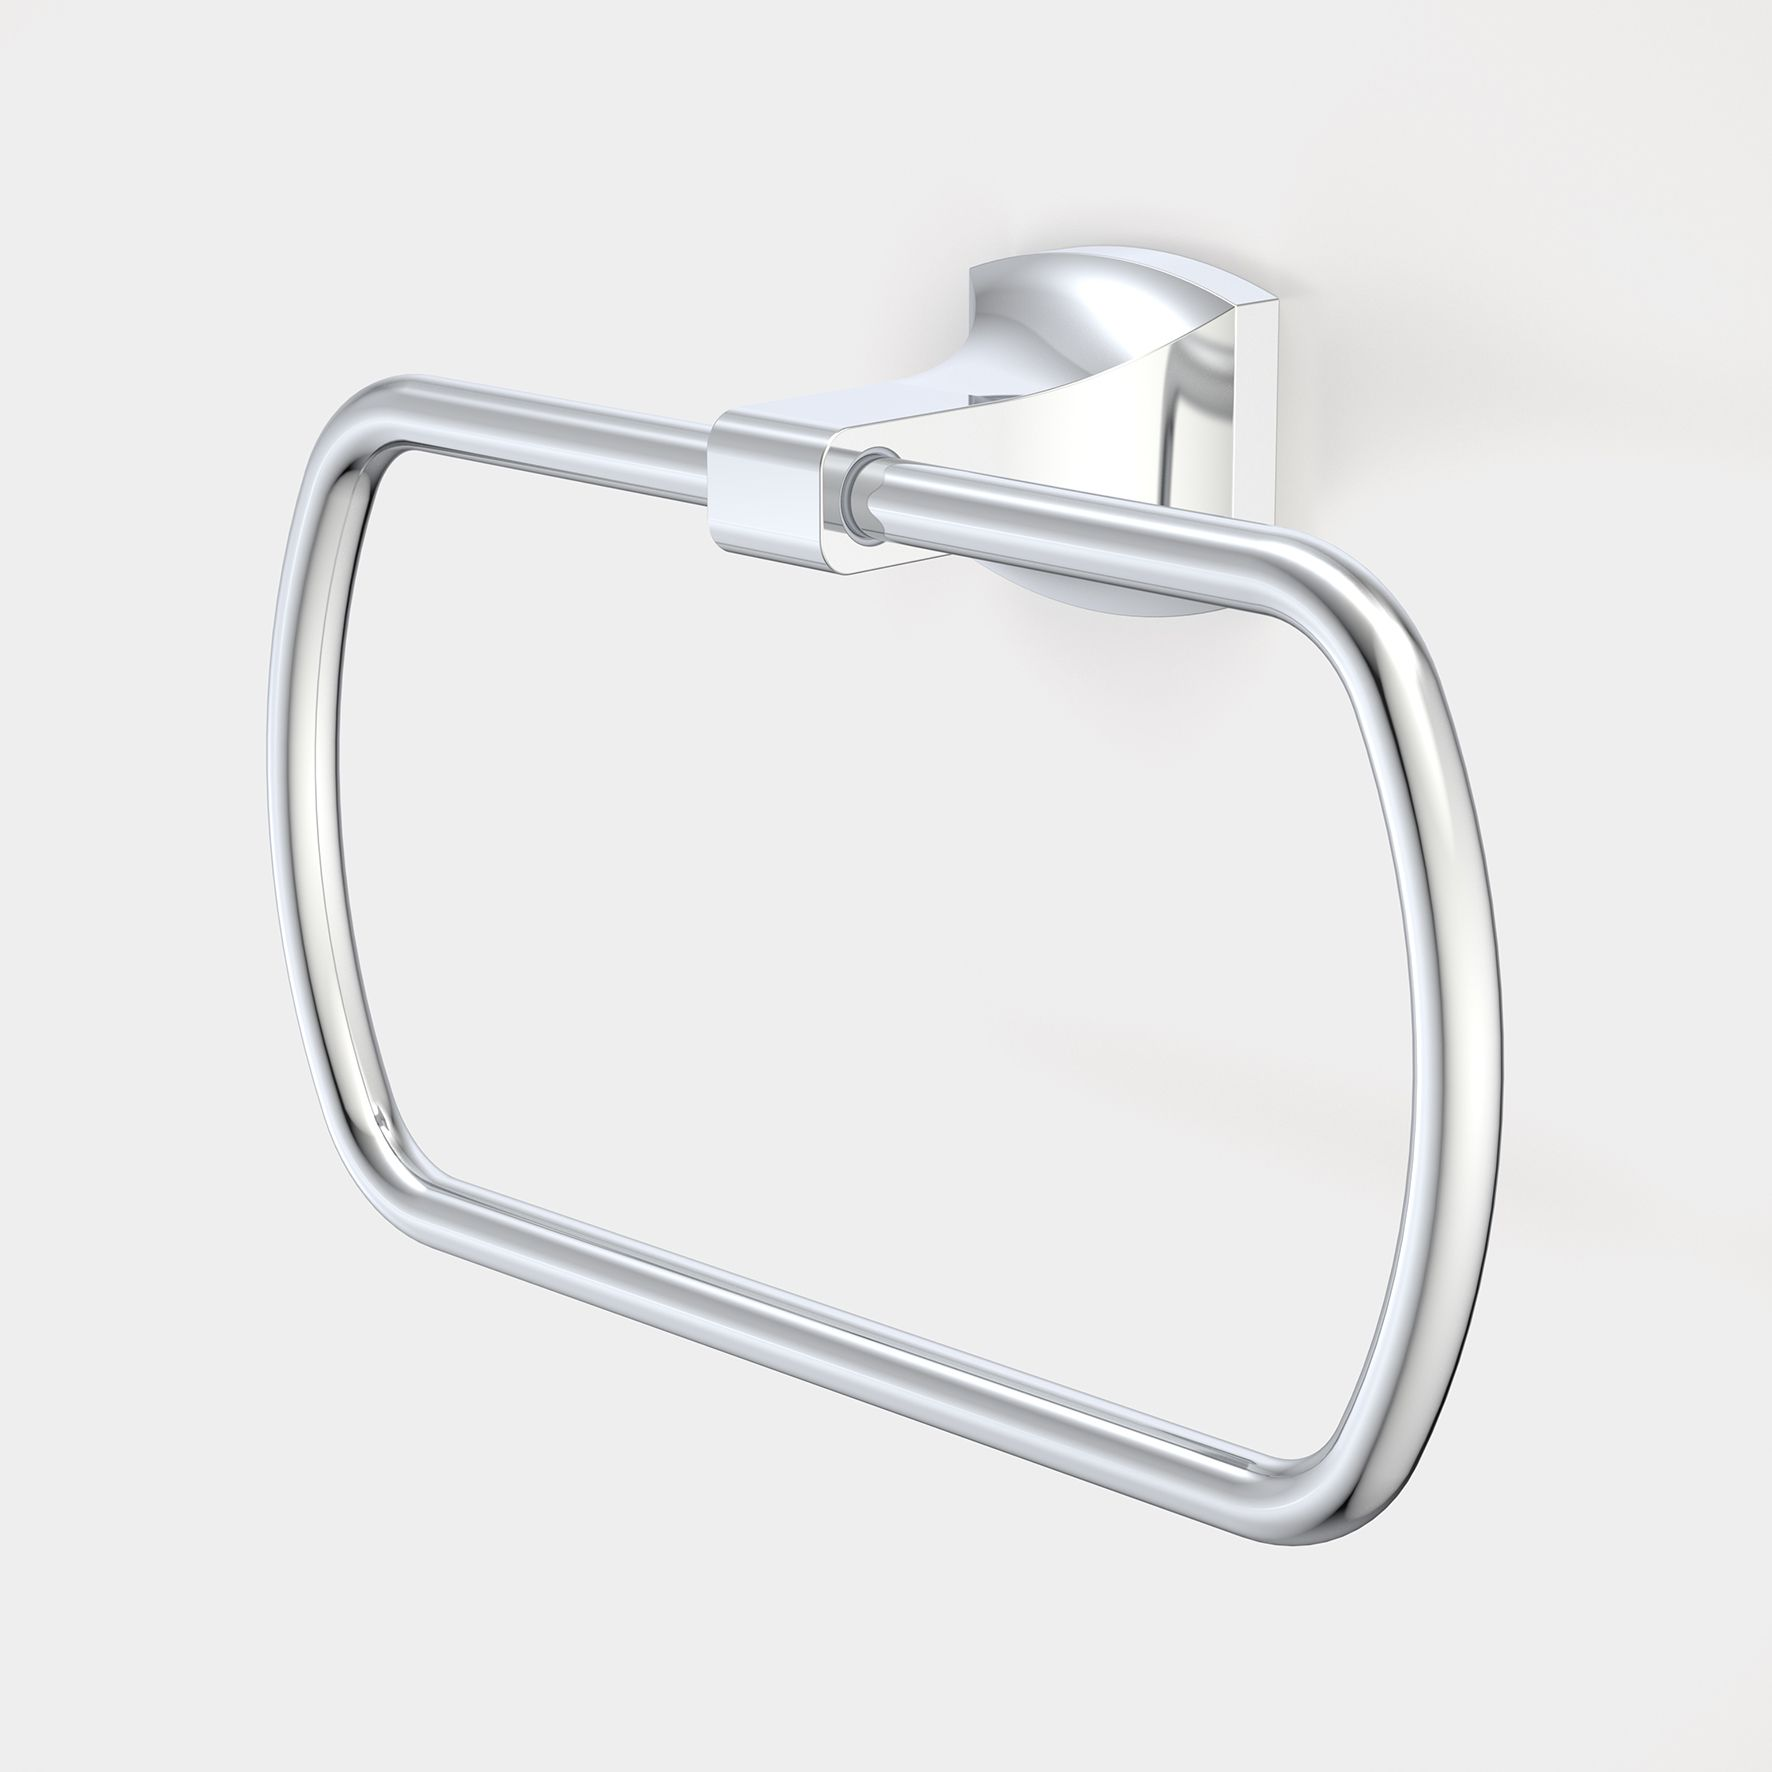 Caroma Bathroom Fittings - Caroma pillar towel ring http www caroma com au